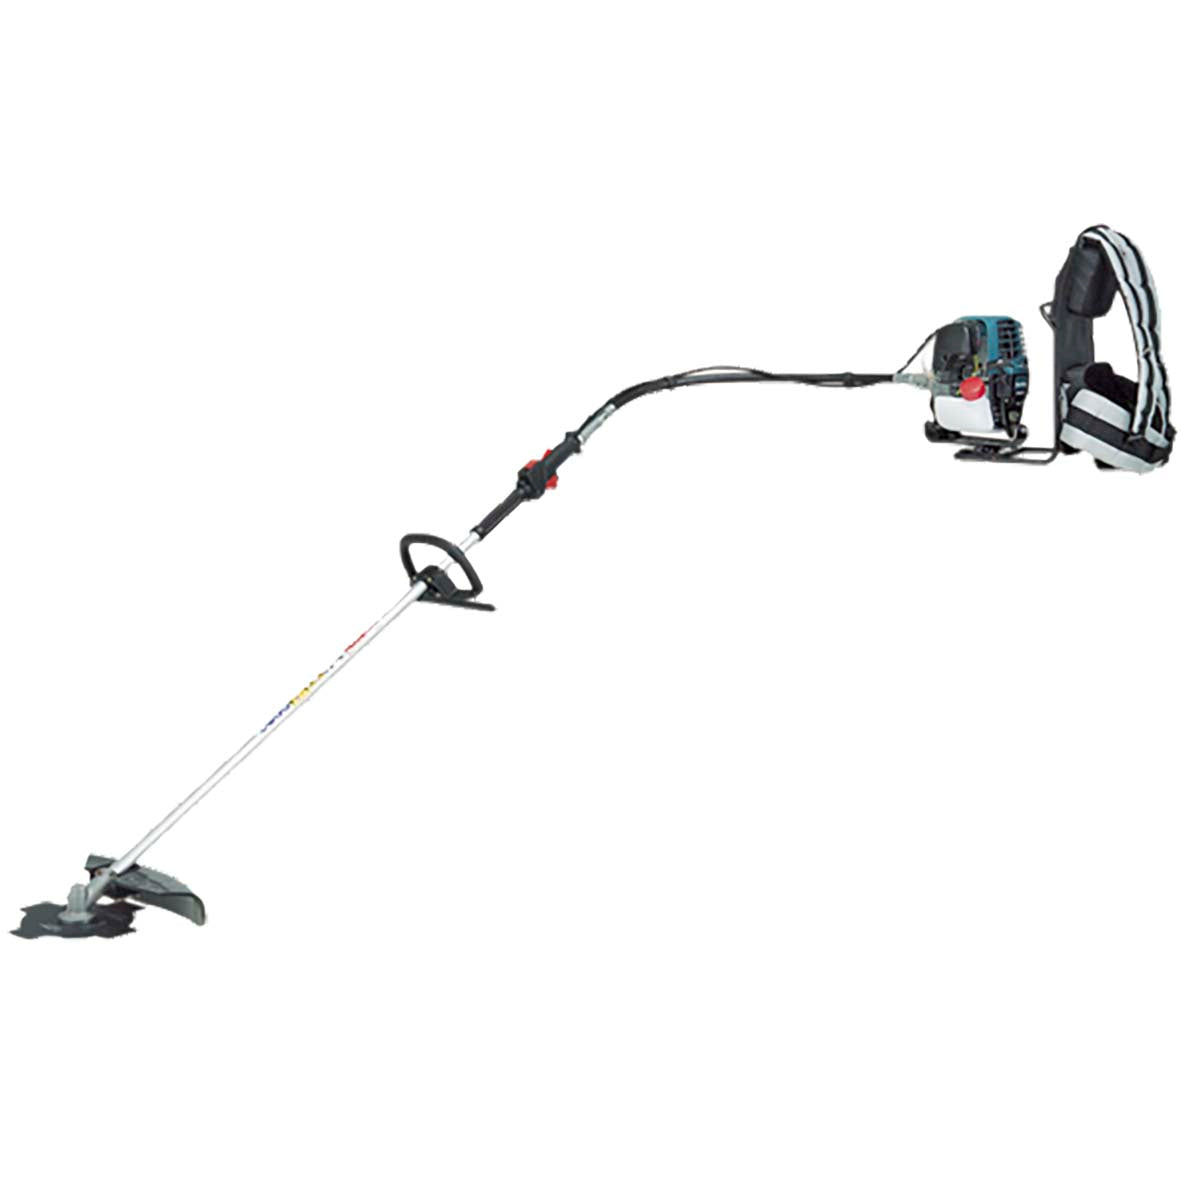 Makita EBH341R 33.5cc 4 Stroke Backpack Brushcutter